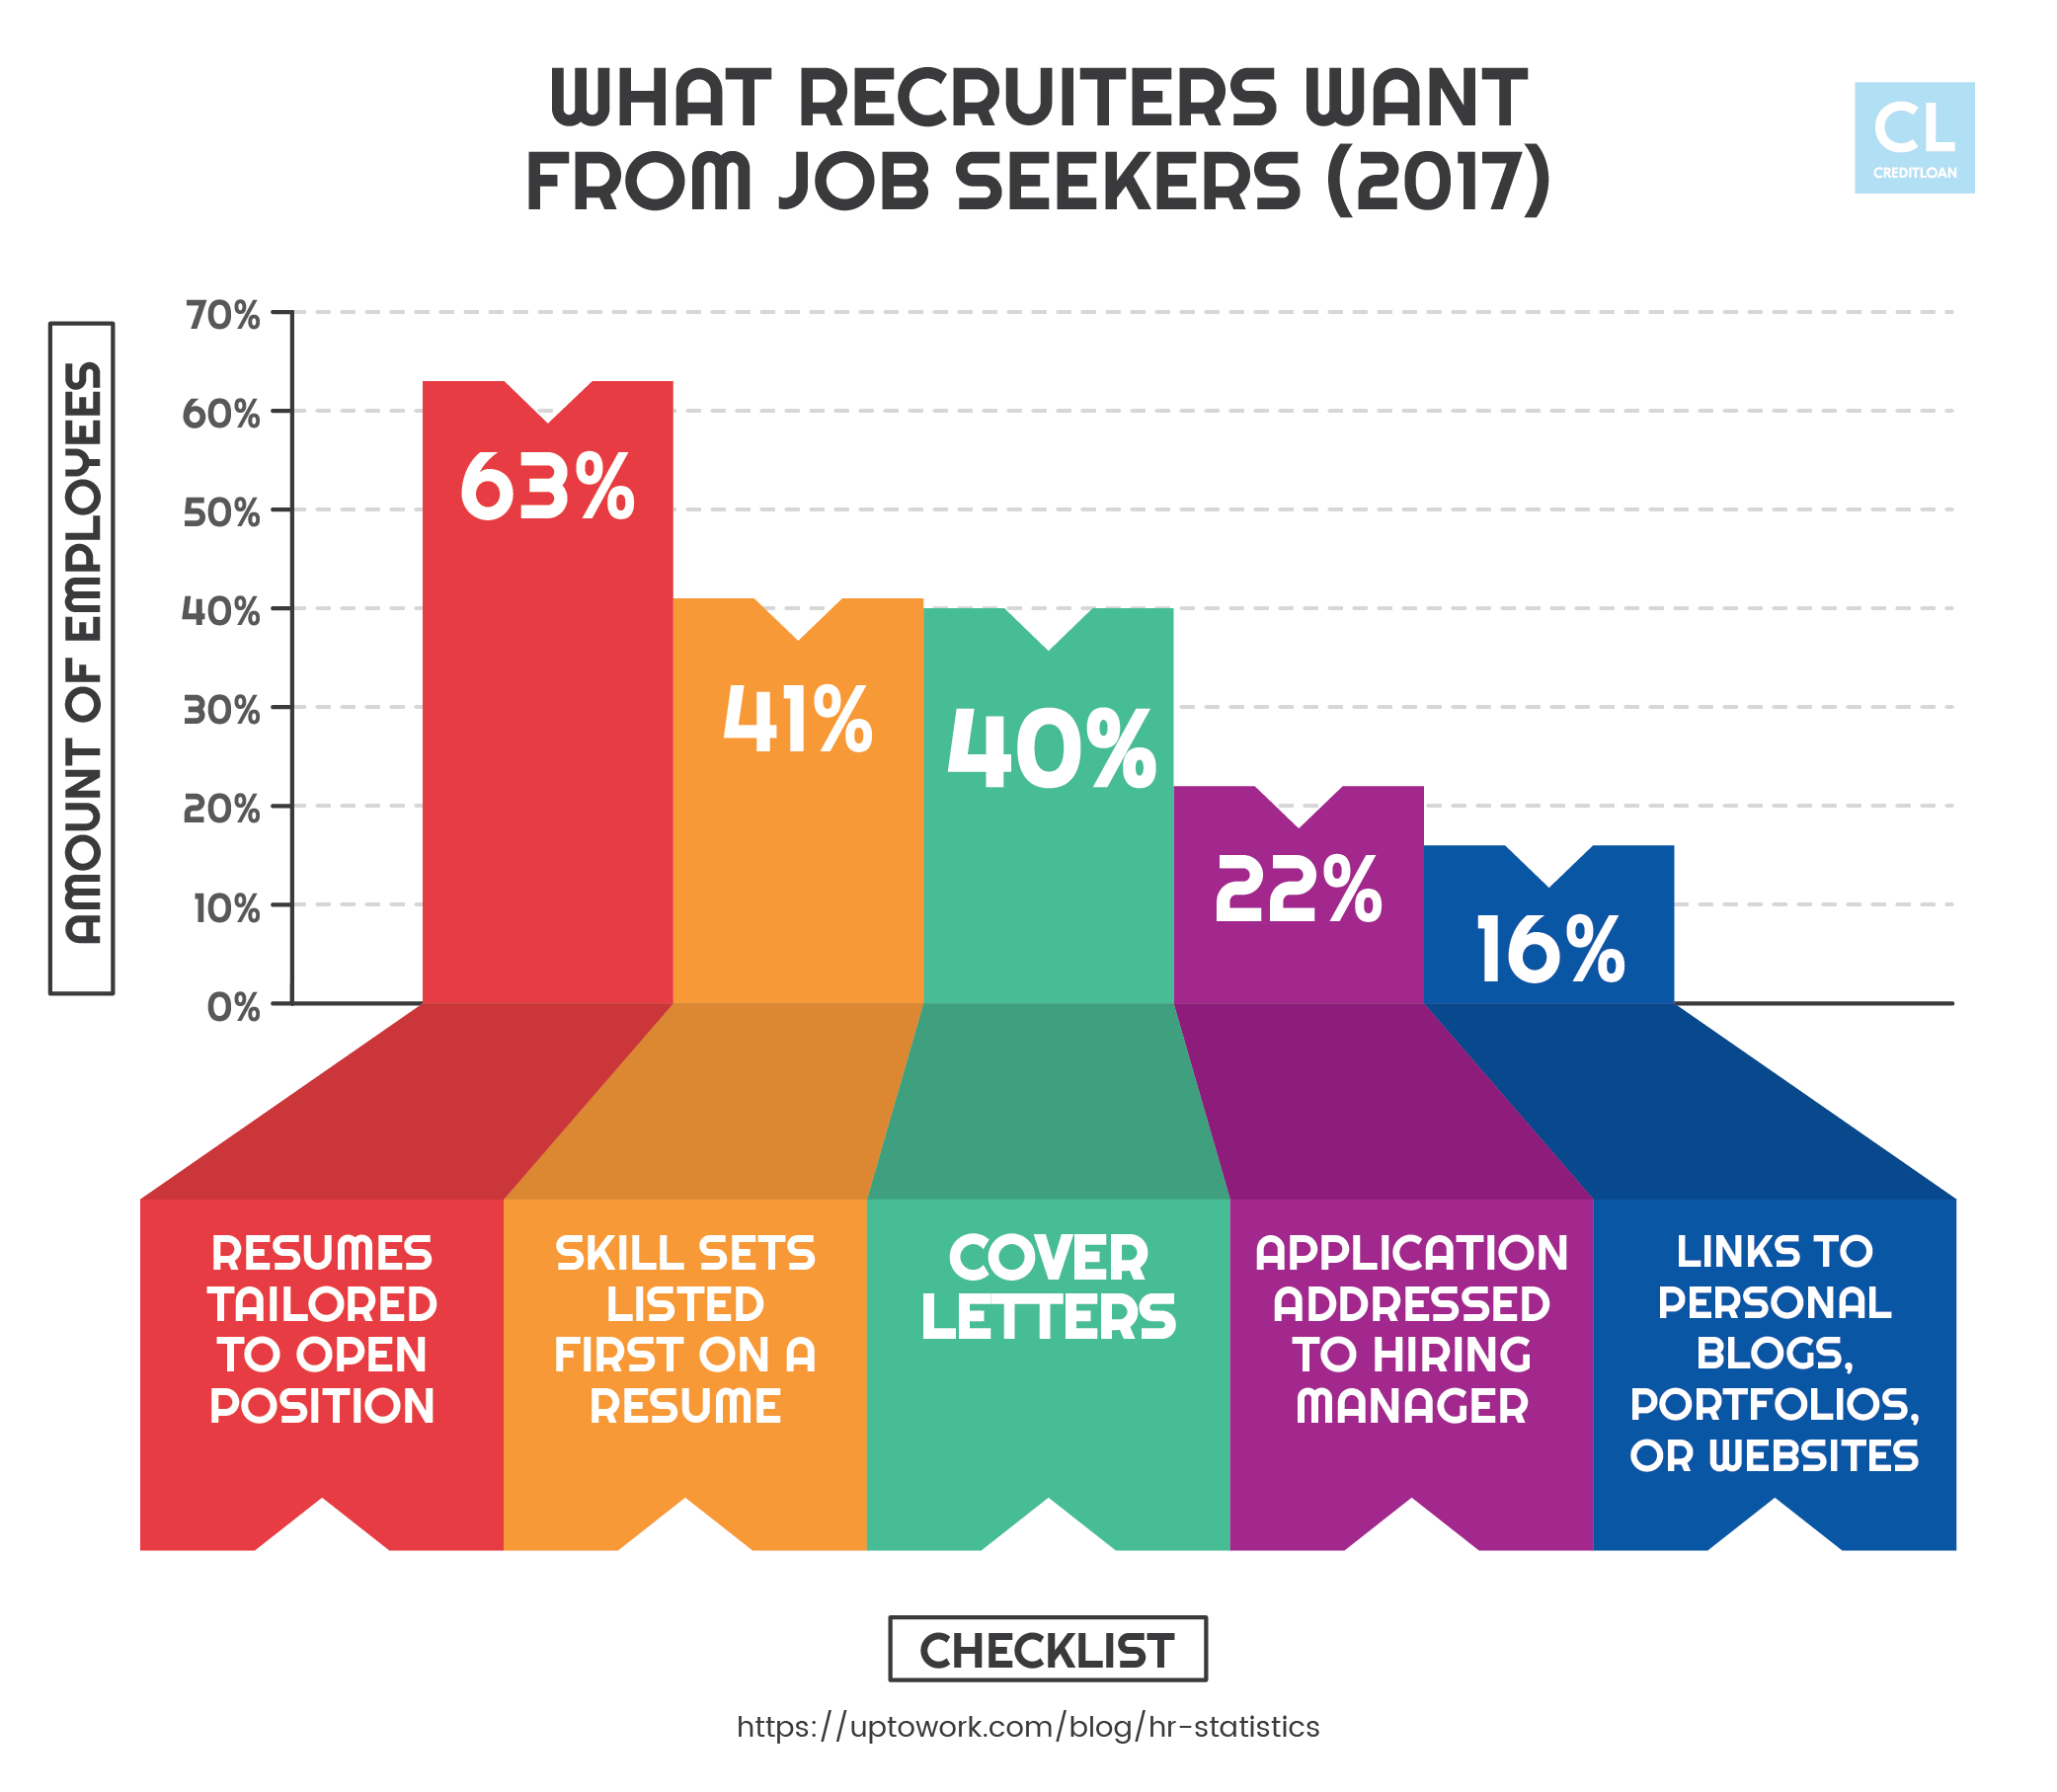 Things recruiters want from job seekers 2017